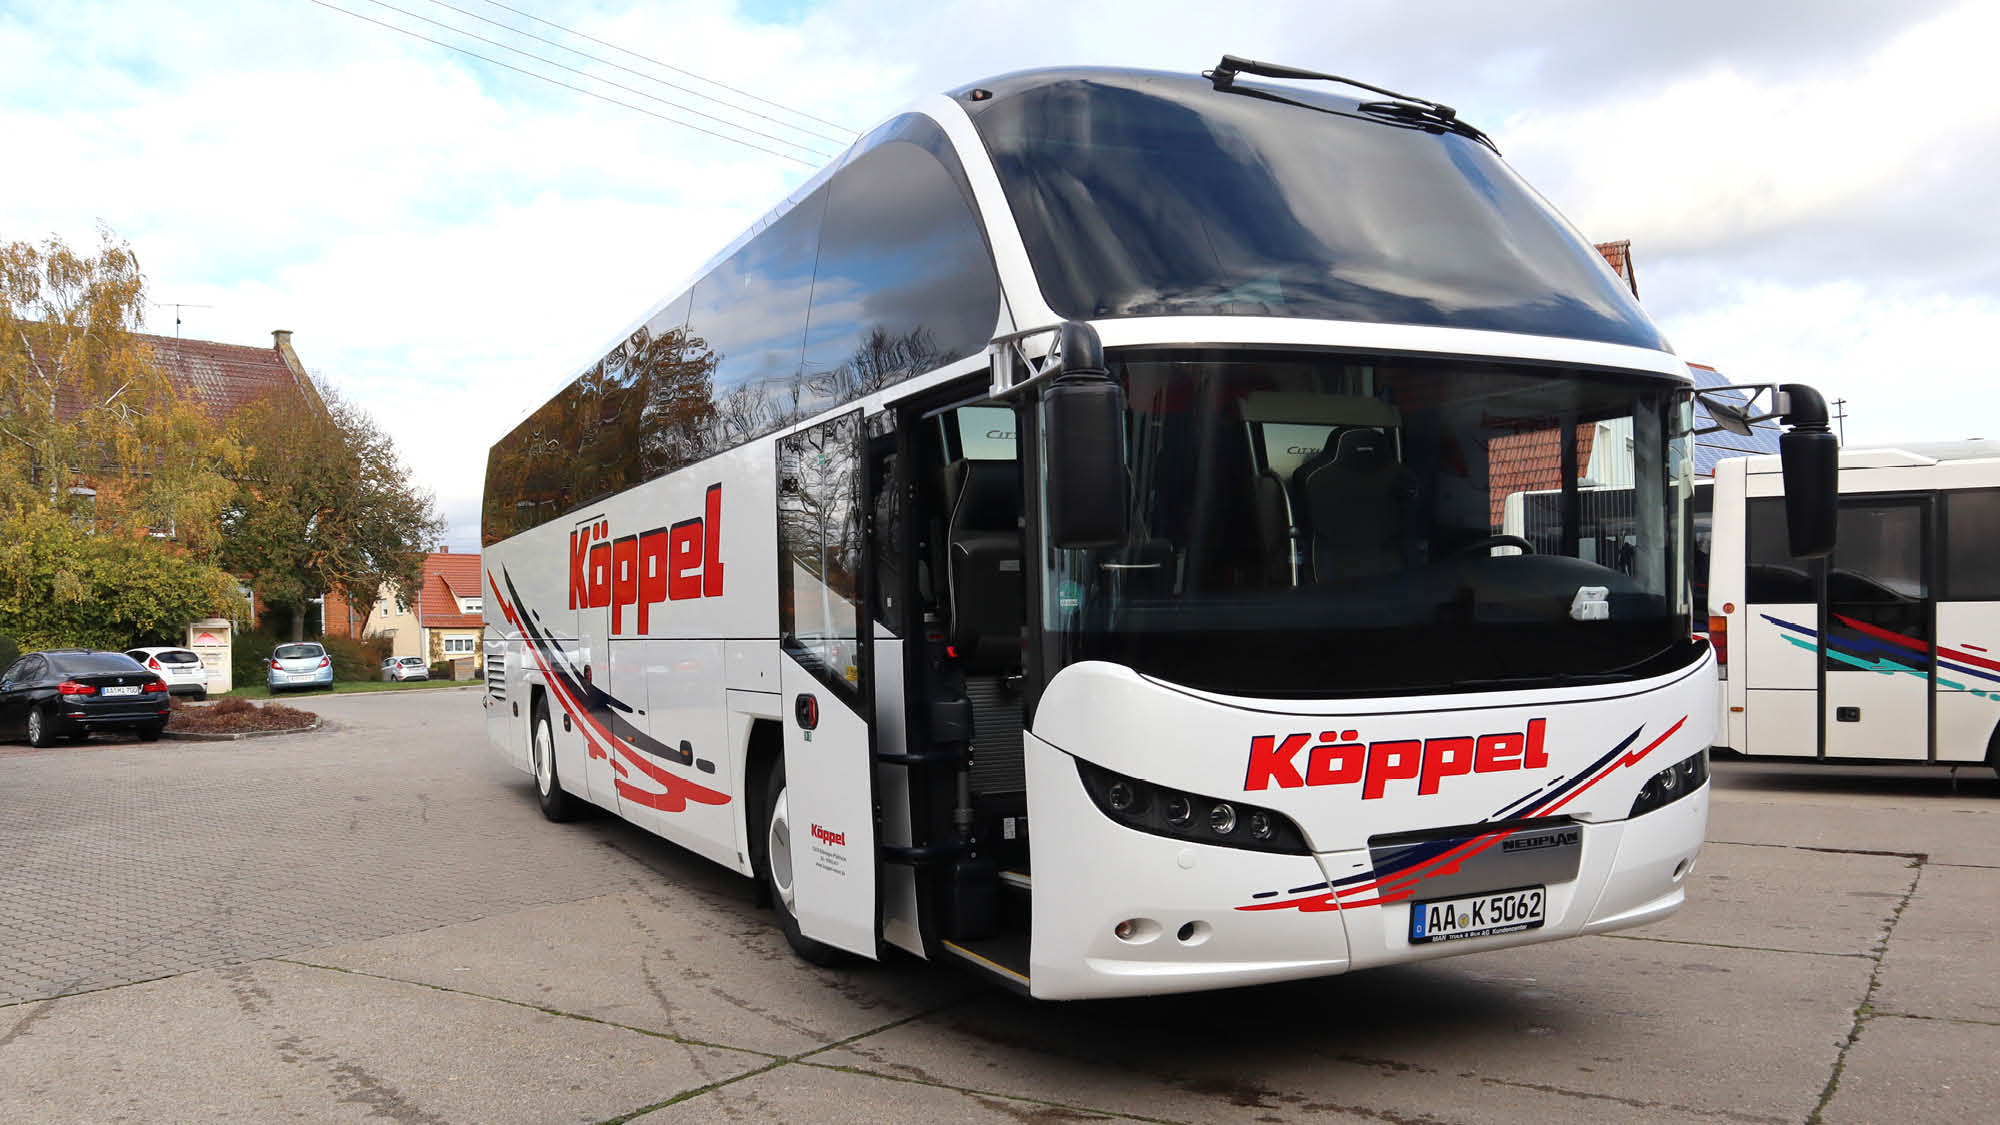 Köppel - Ellwangen - Website - Bus - 2019-12 - 11